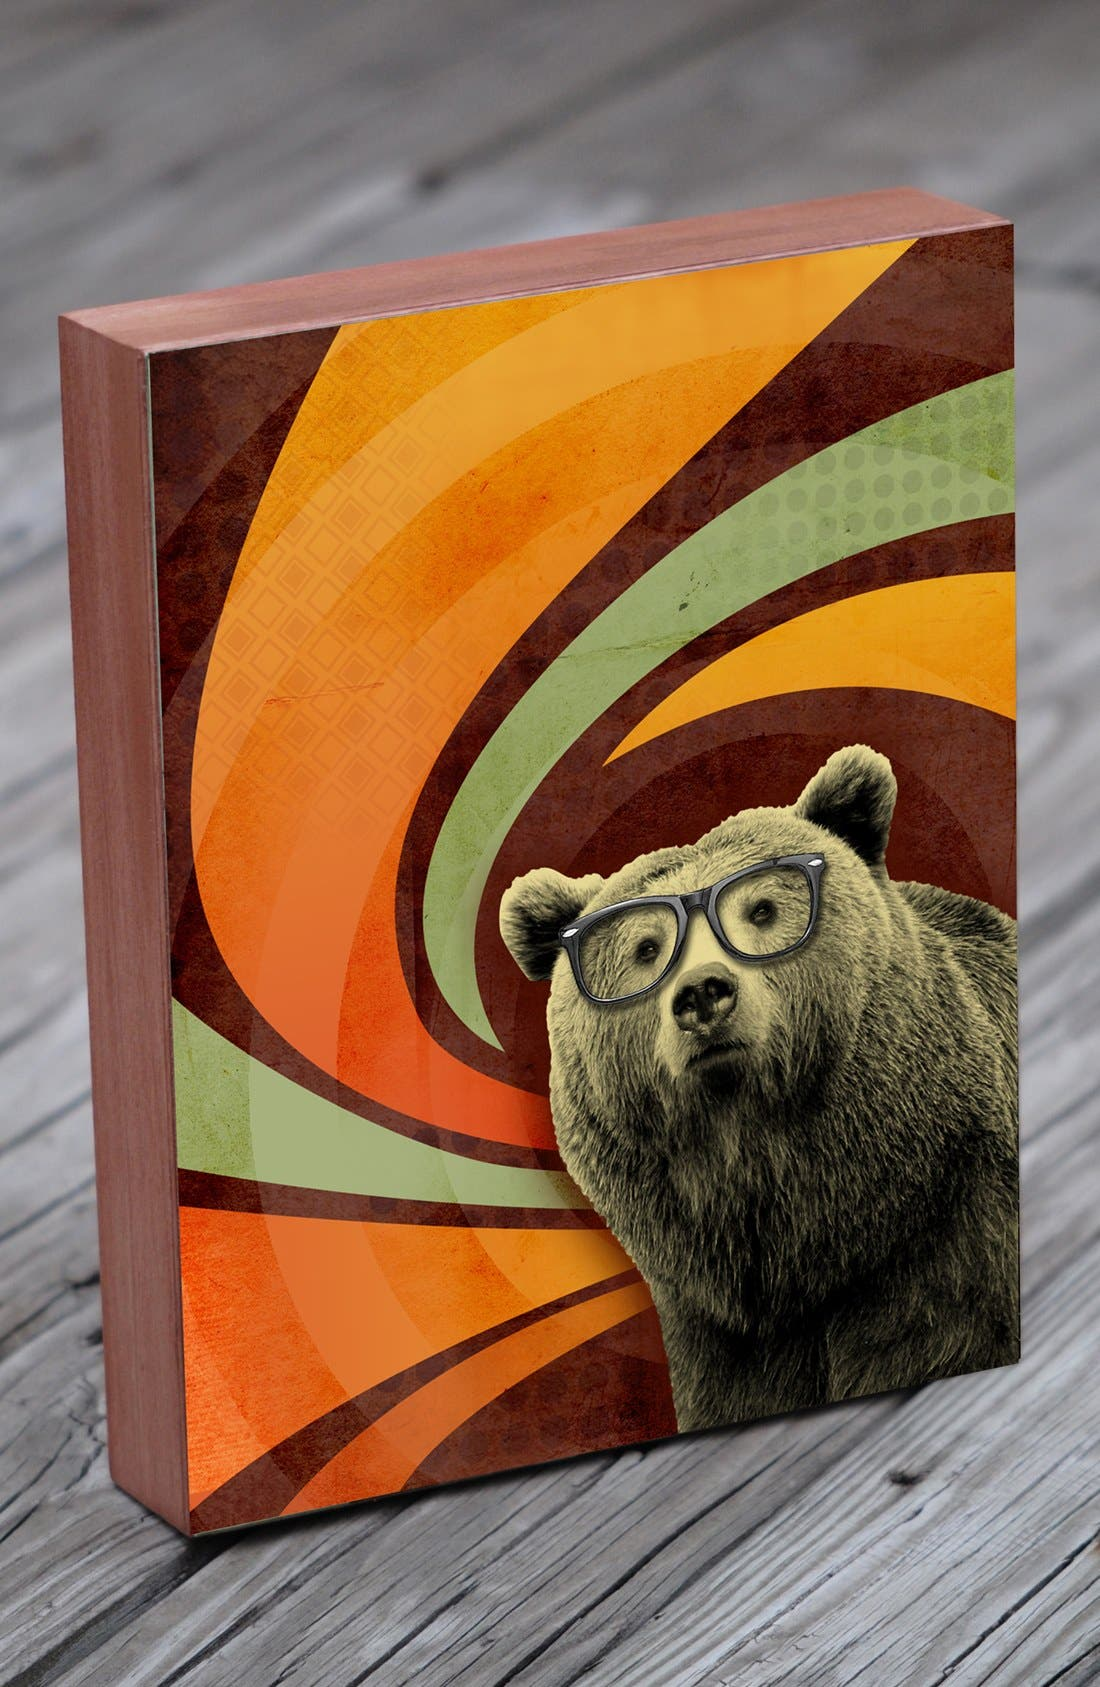 Alternate Image 1 Selected - Lucius Designs 'The Book Smart Bear' Wall Art